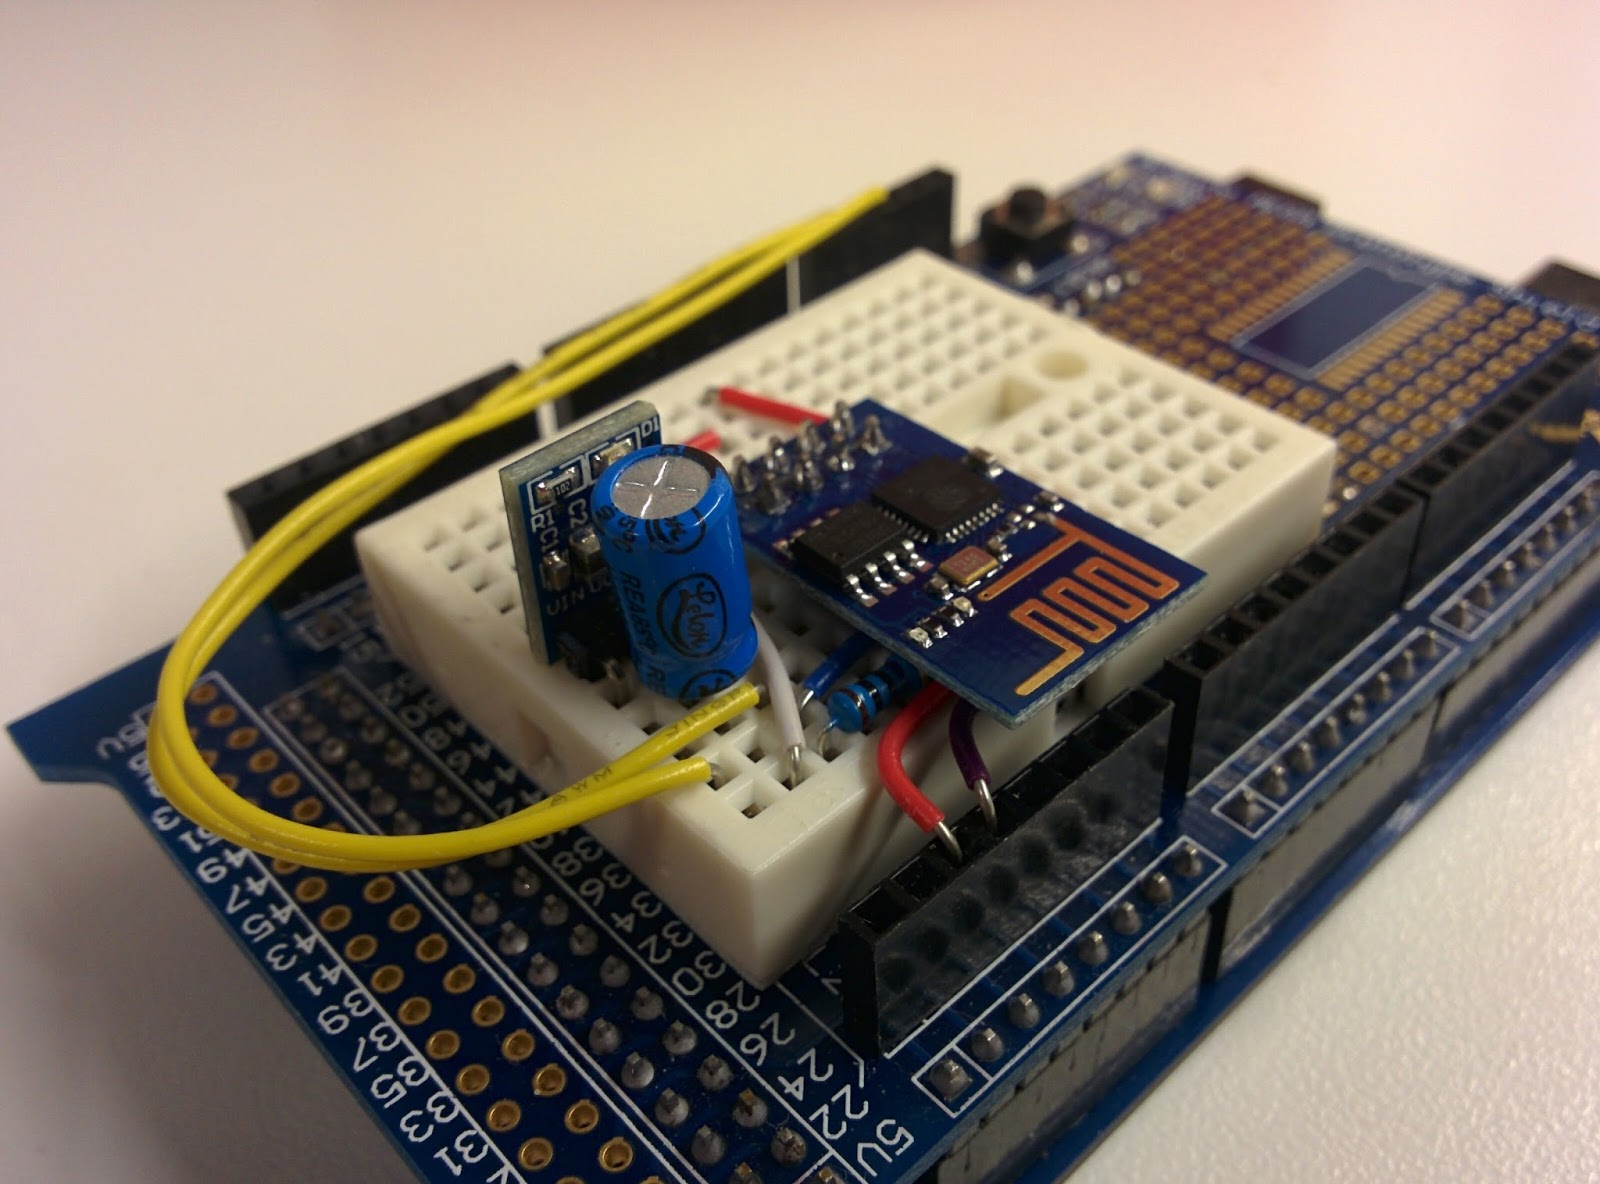 Cheap arduino wifi shield with esp yet another